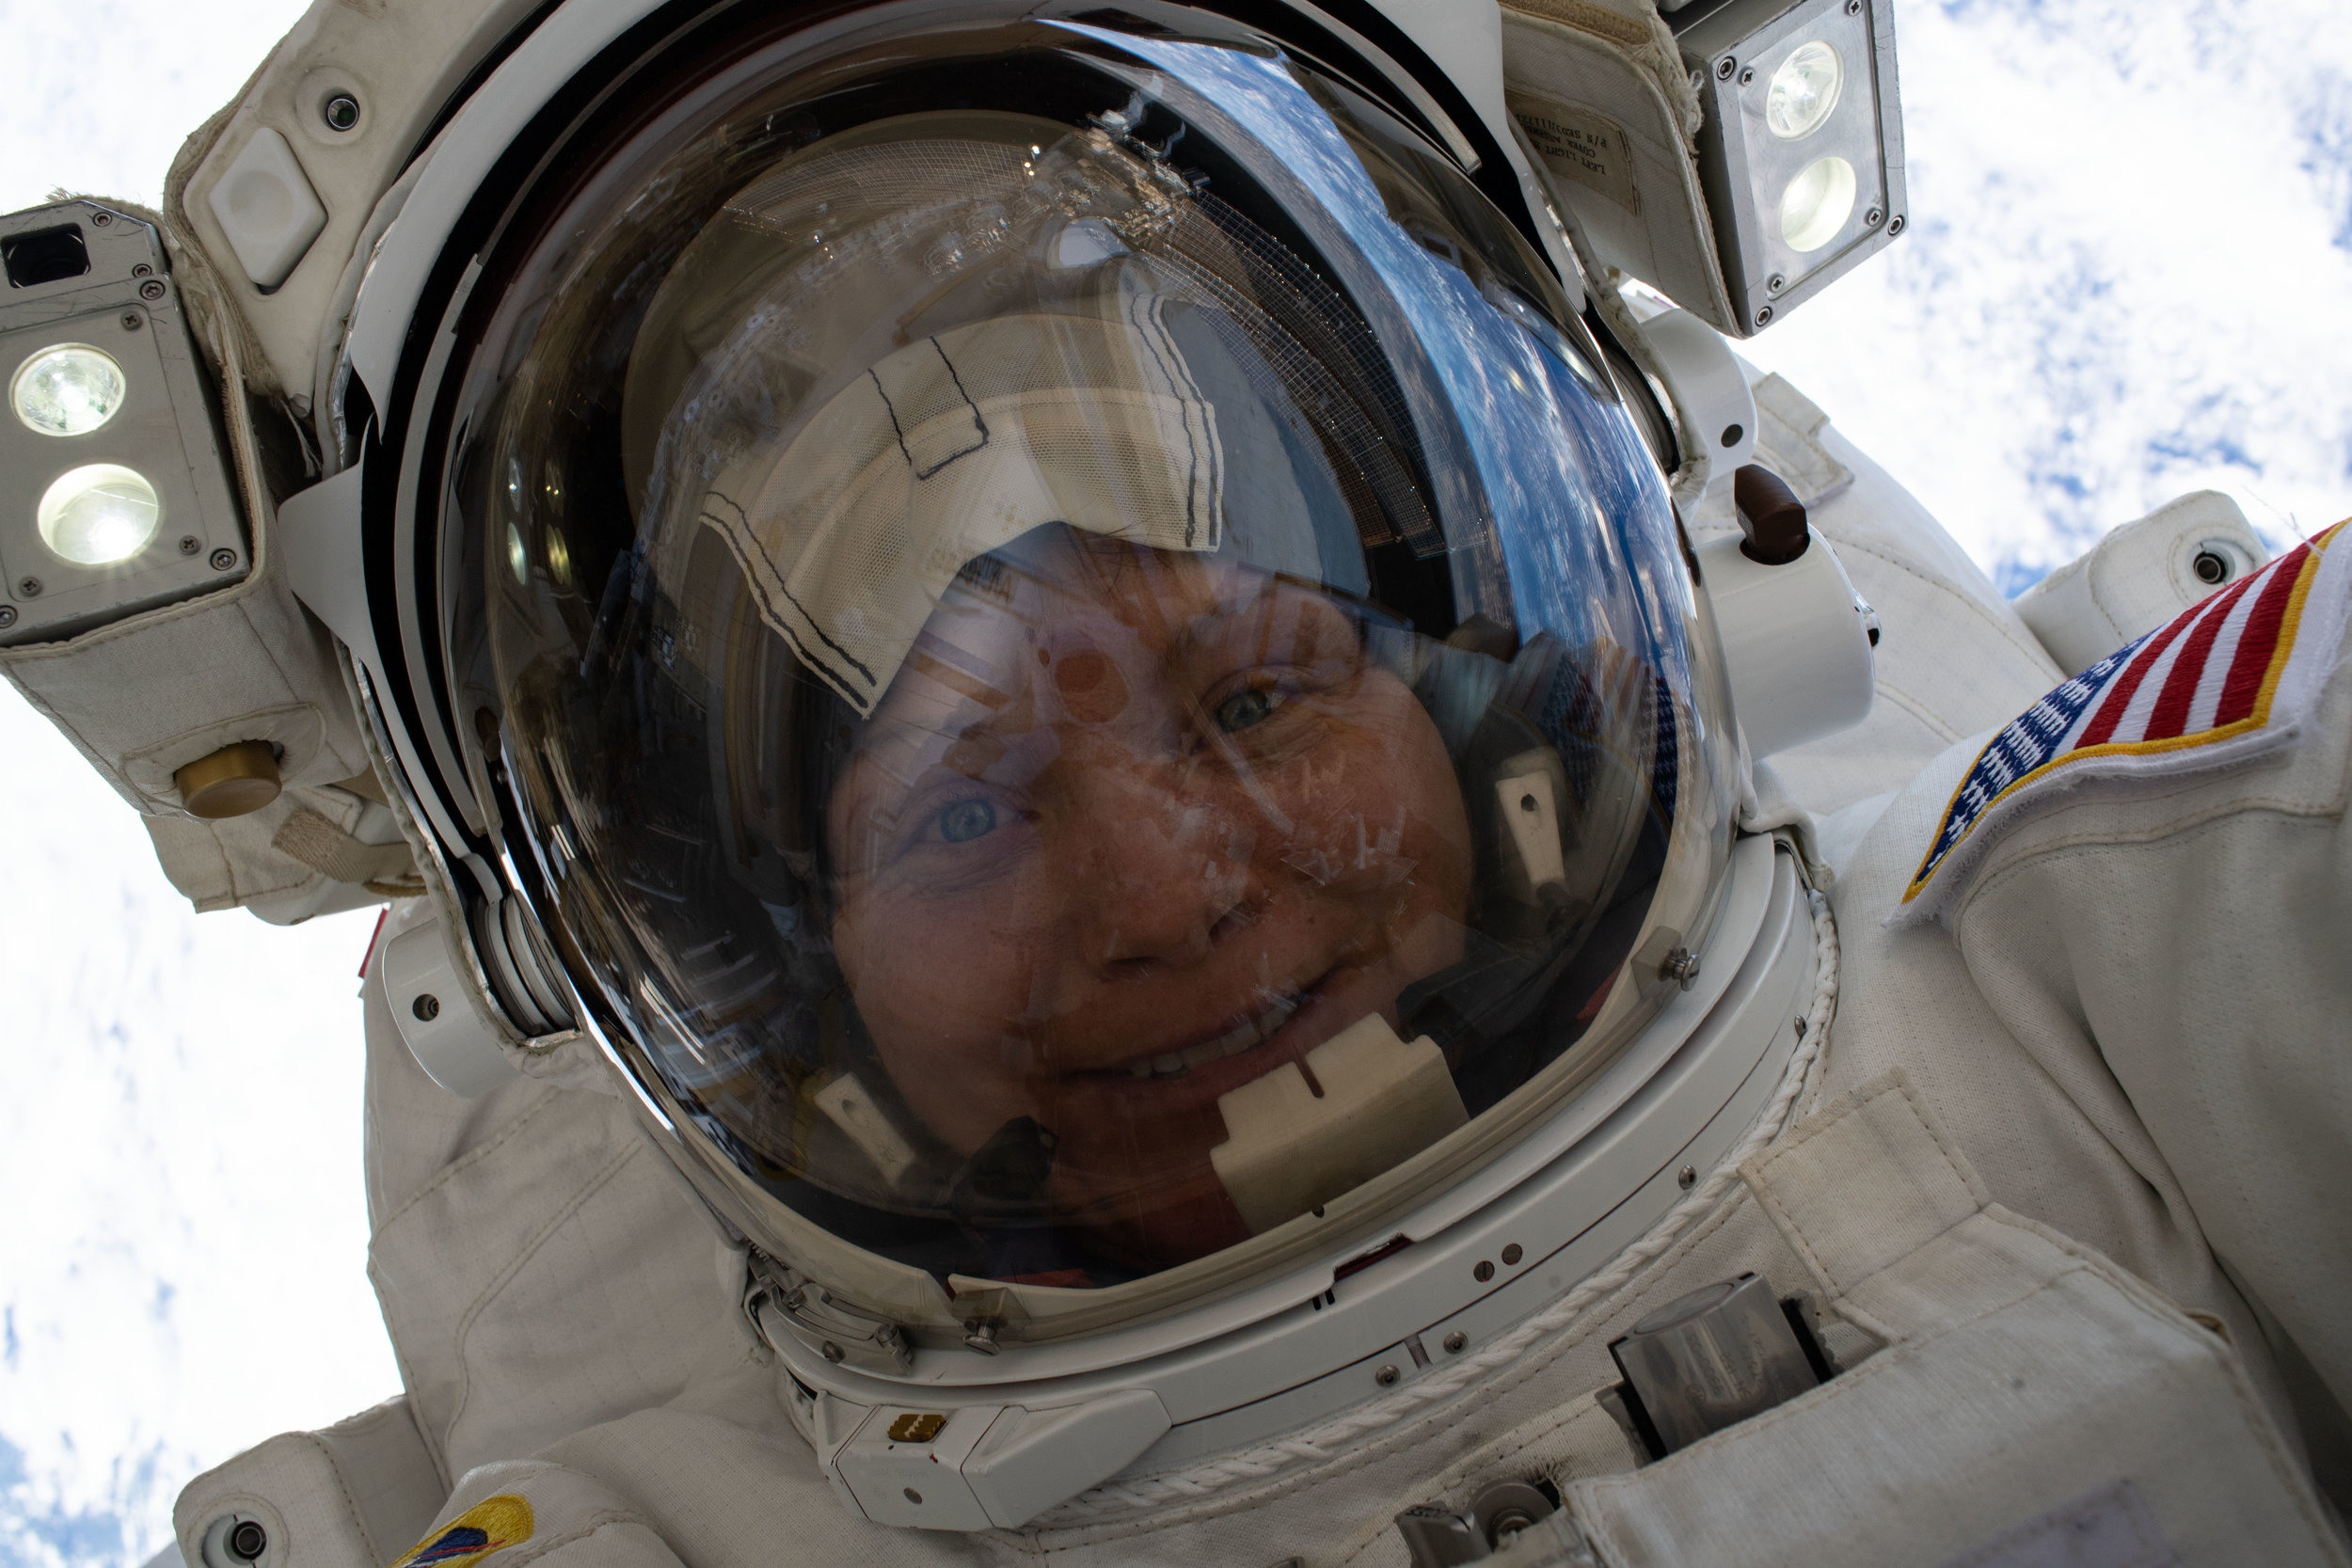 Astronaut Anne McClain during her first spacewalk on March 22, 2019. Credit: NASA